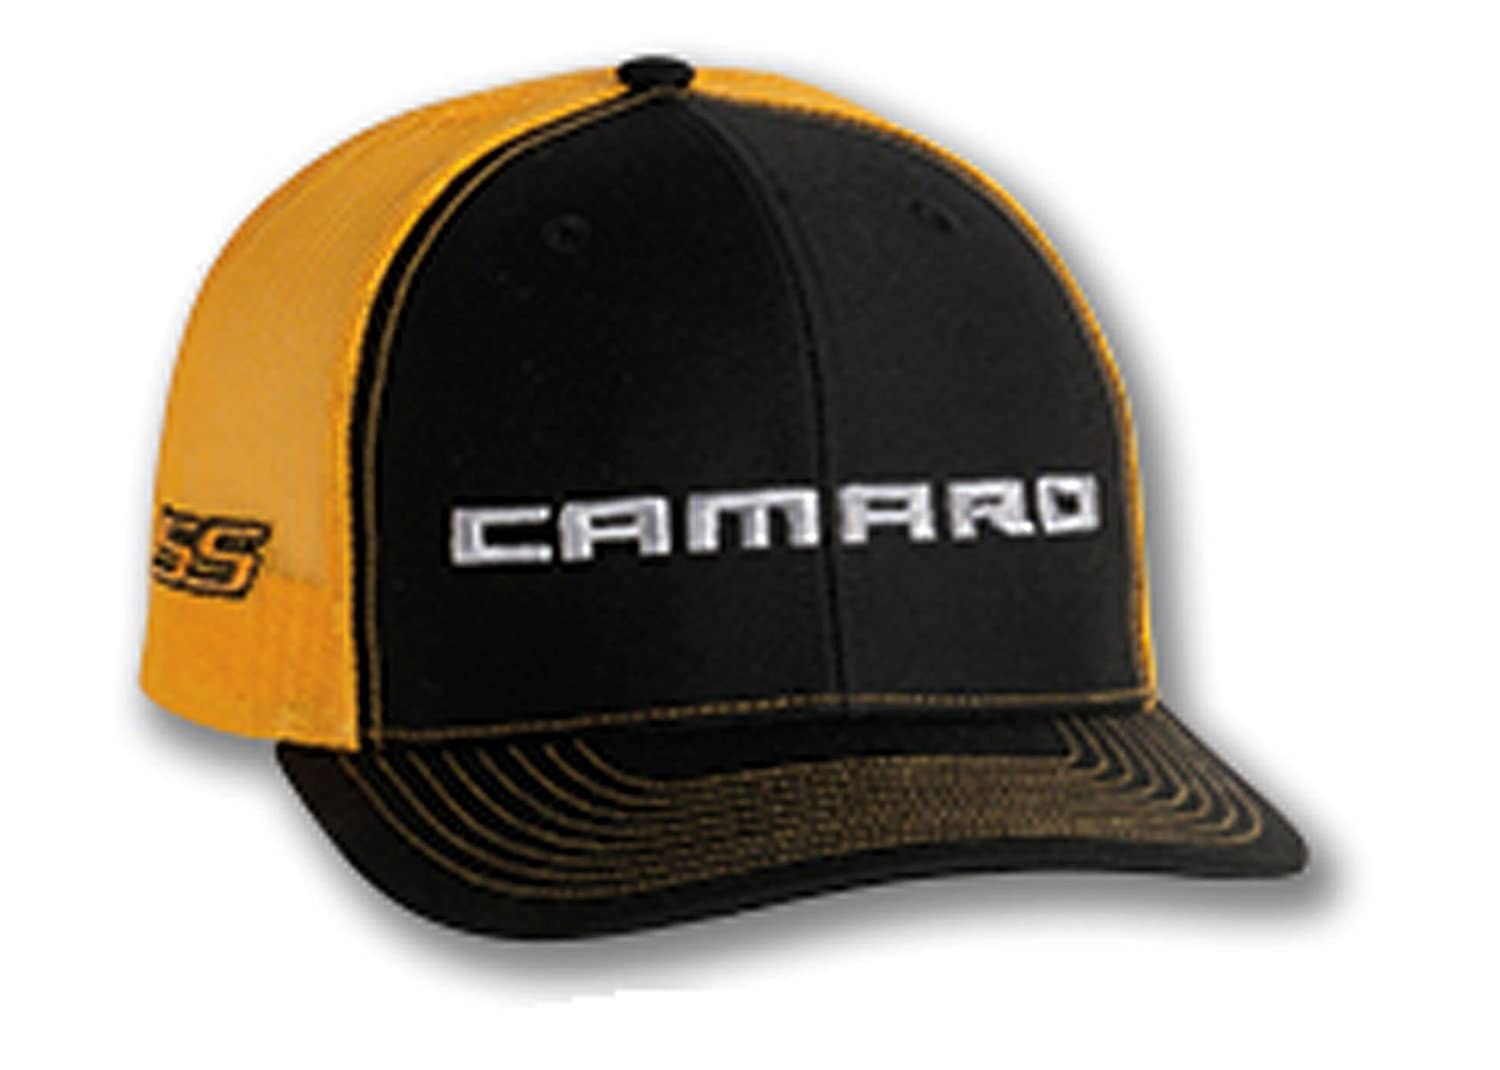 Gregs Automotive Chevrolet Chevy Camaro SS Trucker Hat Cap Yellow Bundle Includes 1 Hat and 1 Driving Style Decal